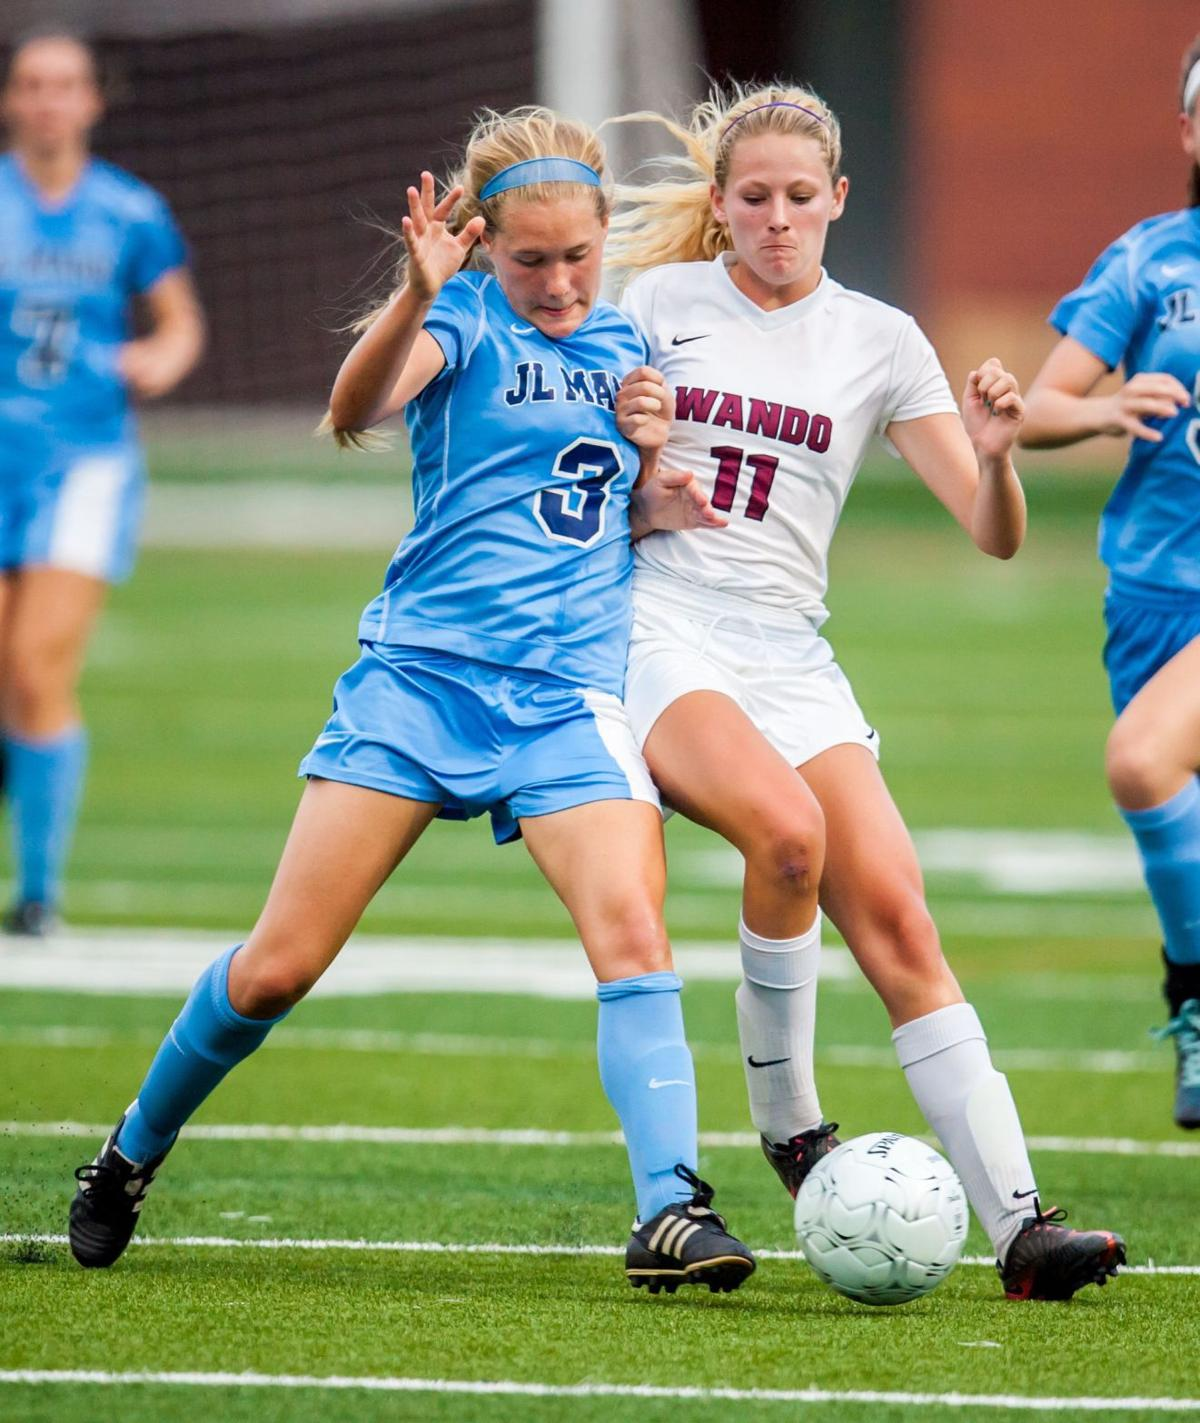 Wando repeats in AAAA girls soccer, 2-1, over top-ranked J.L. Mann